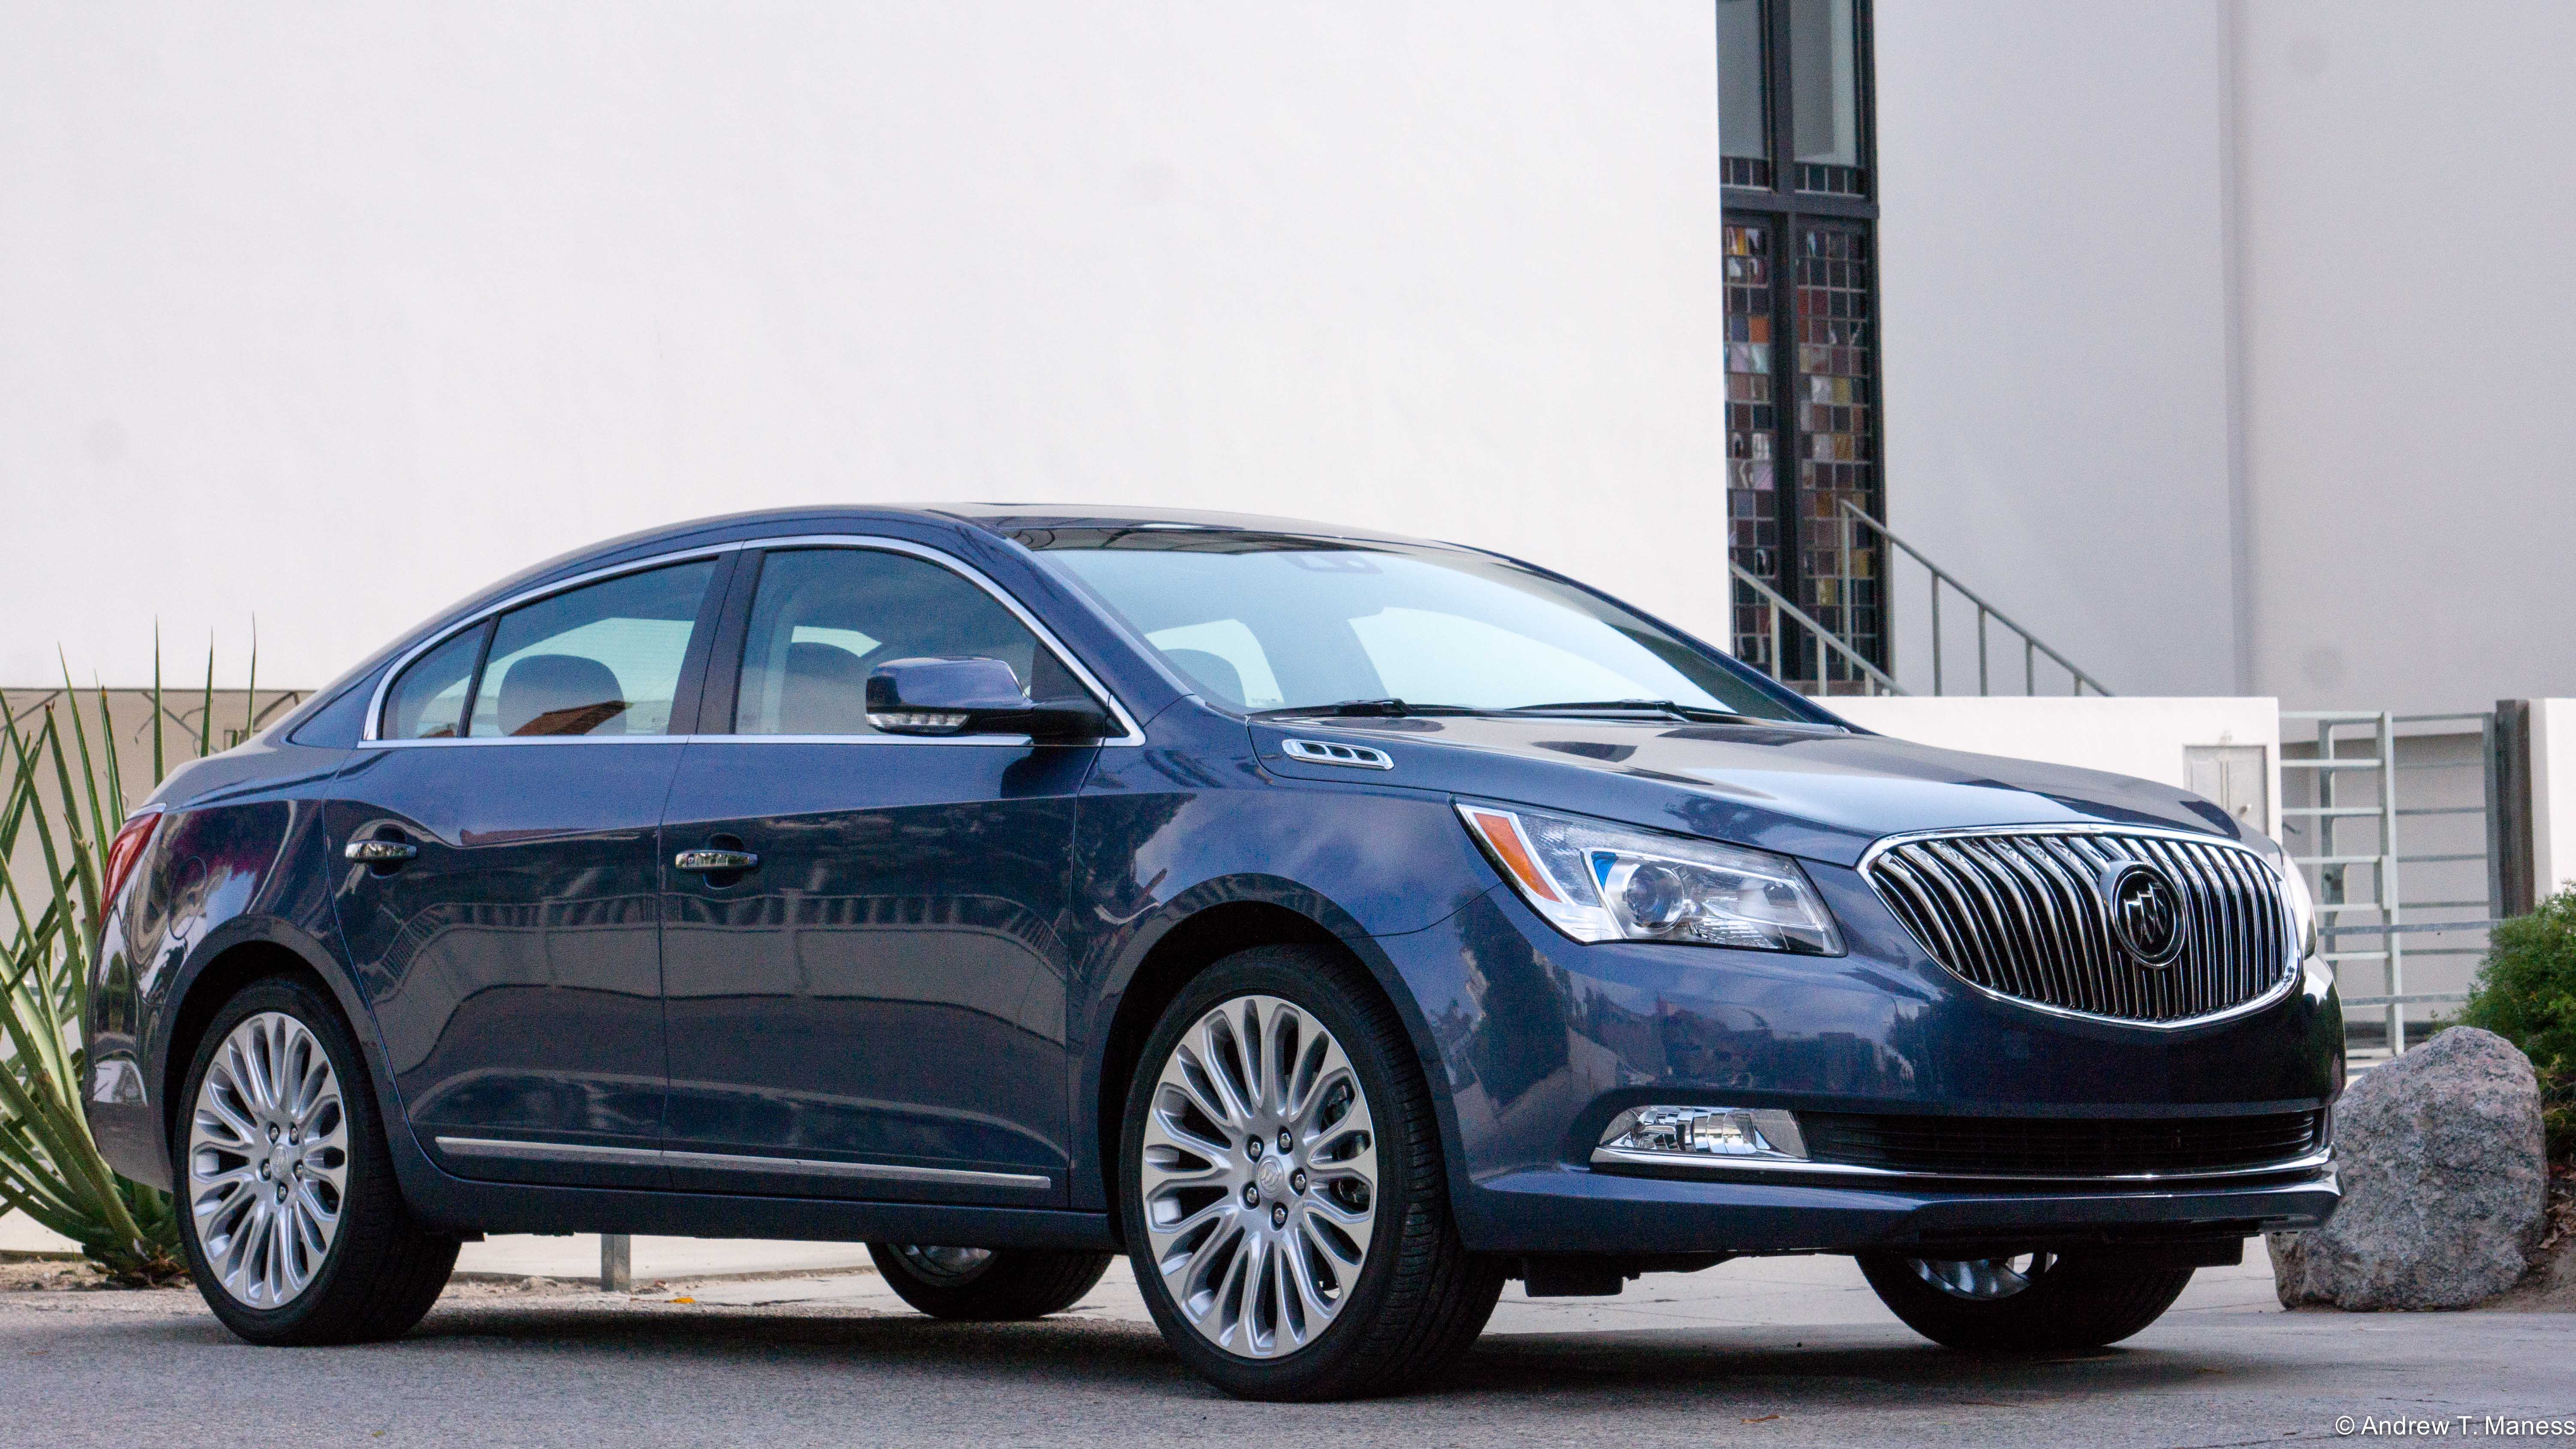 Black Book Auto Value >> Future Used Car Review: 2015 Buick LaCrosse - The AutoTempest Blog